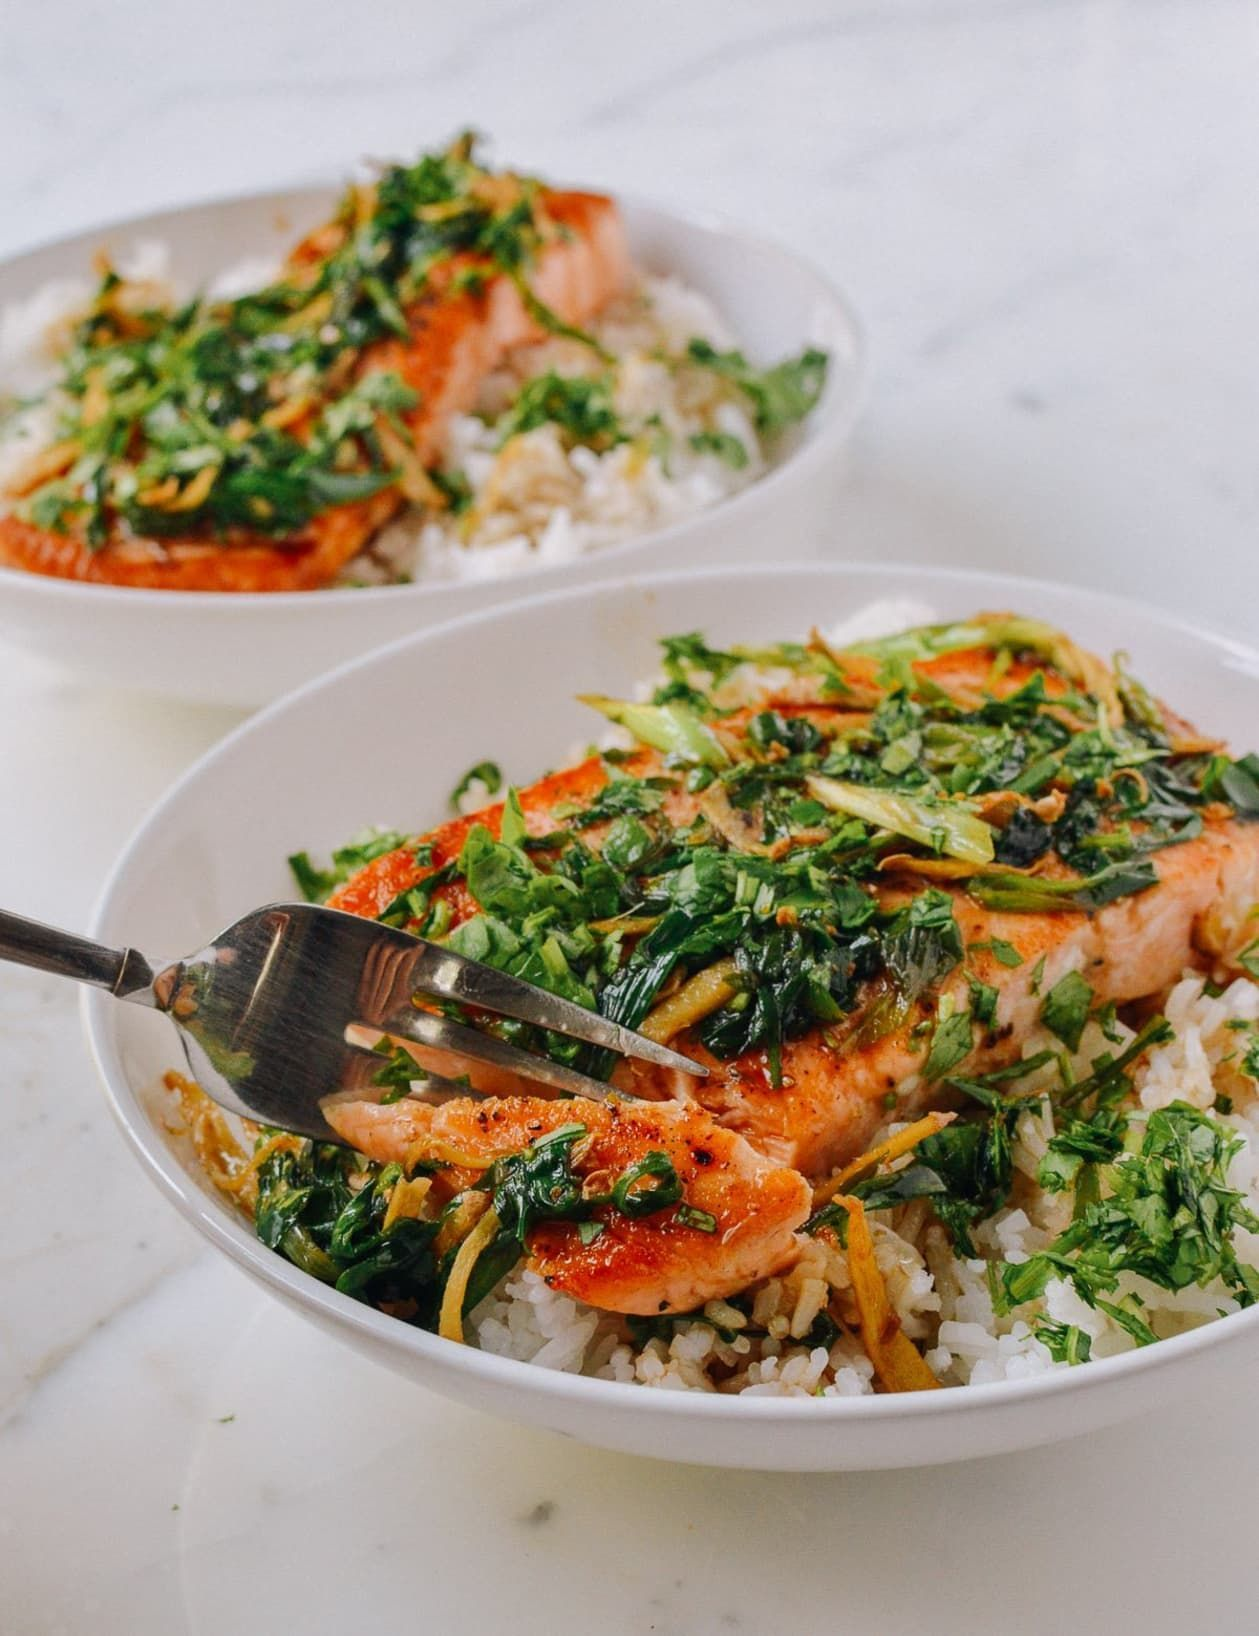 Seared Salmon with Soy, Scallions, and Ginger #searedsalmonrecipes Seared Salmon with Soy, Scallions, and Ginger | Kitchn #searedsalmonrecipes